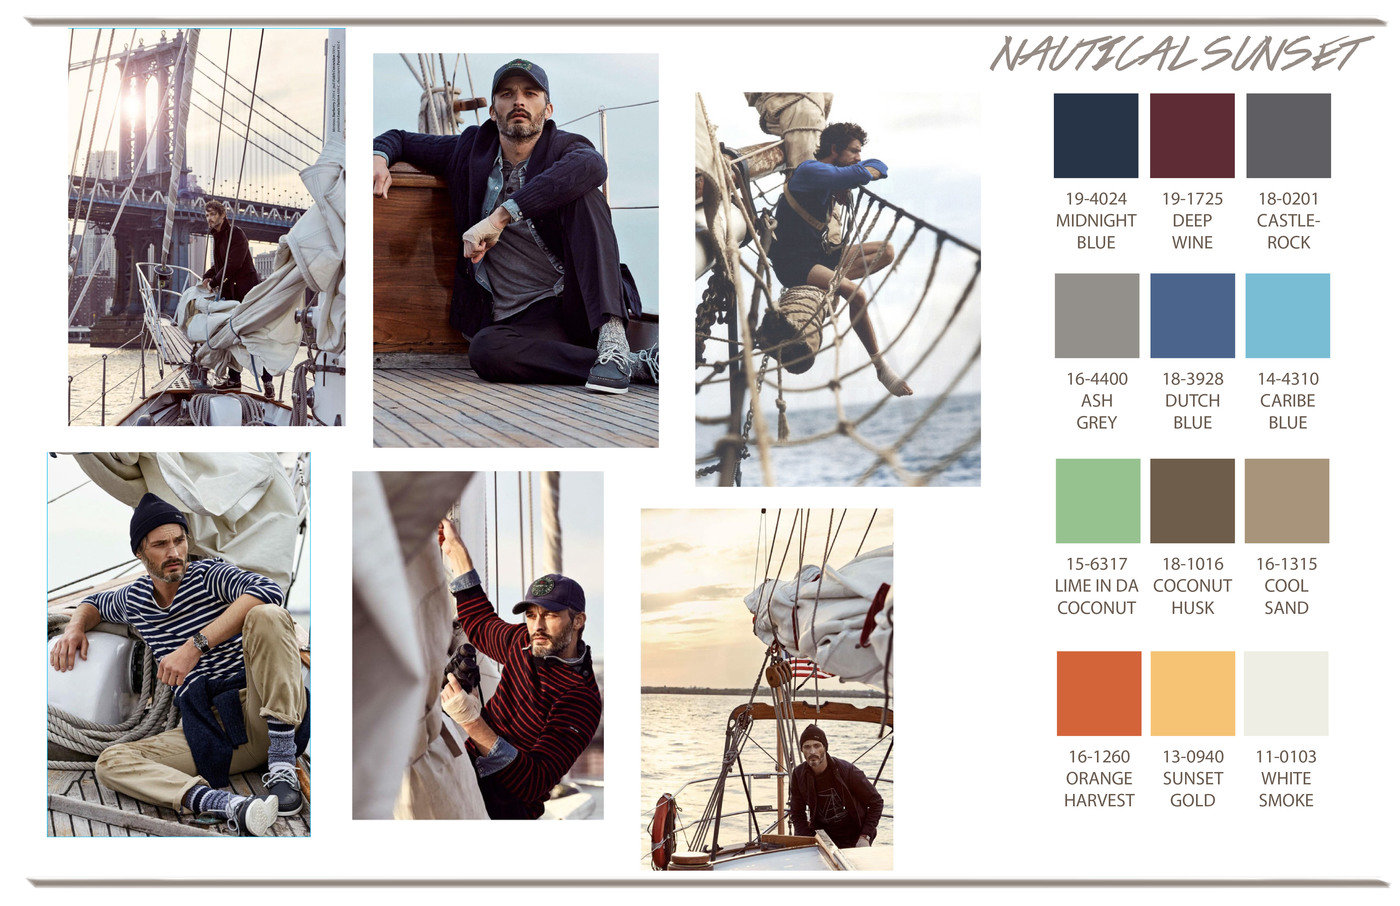 Holiday 2017 Mens Concept Board Nautical Sunset By Kristel Soriano Galima At Coroflot Com